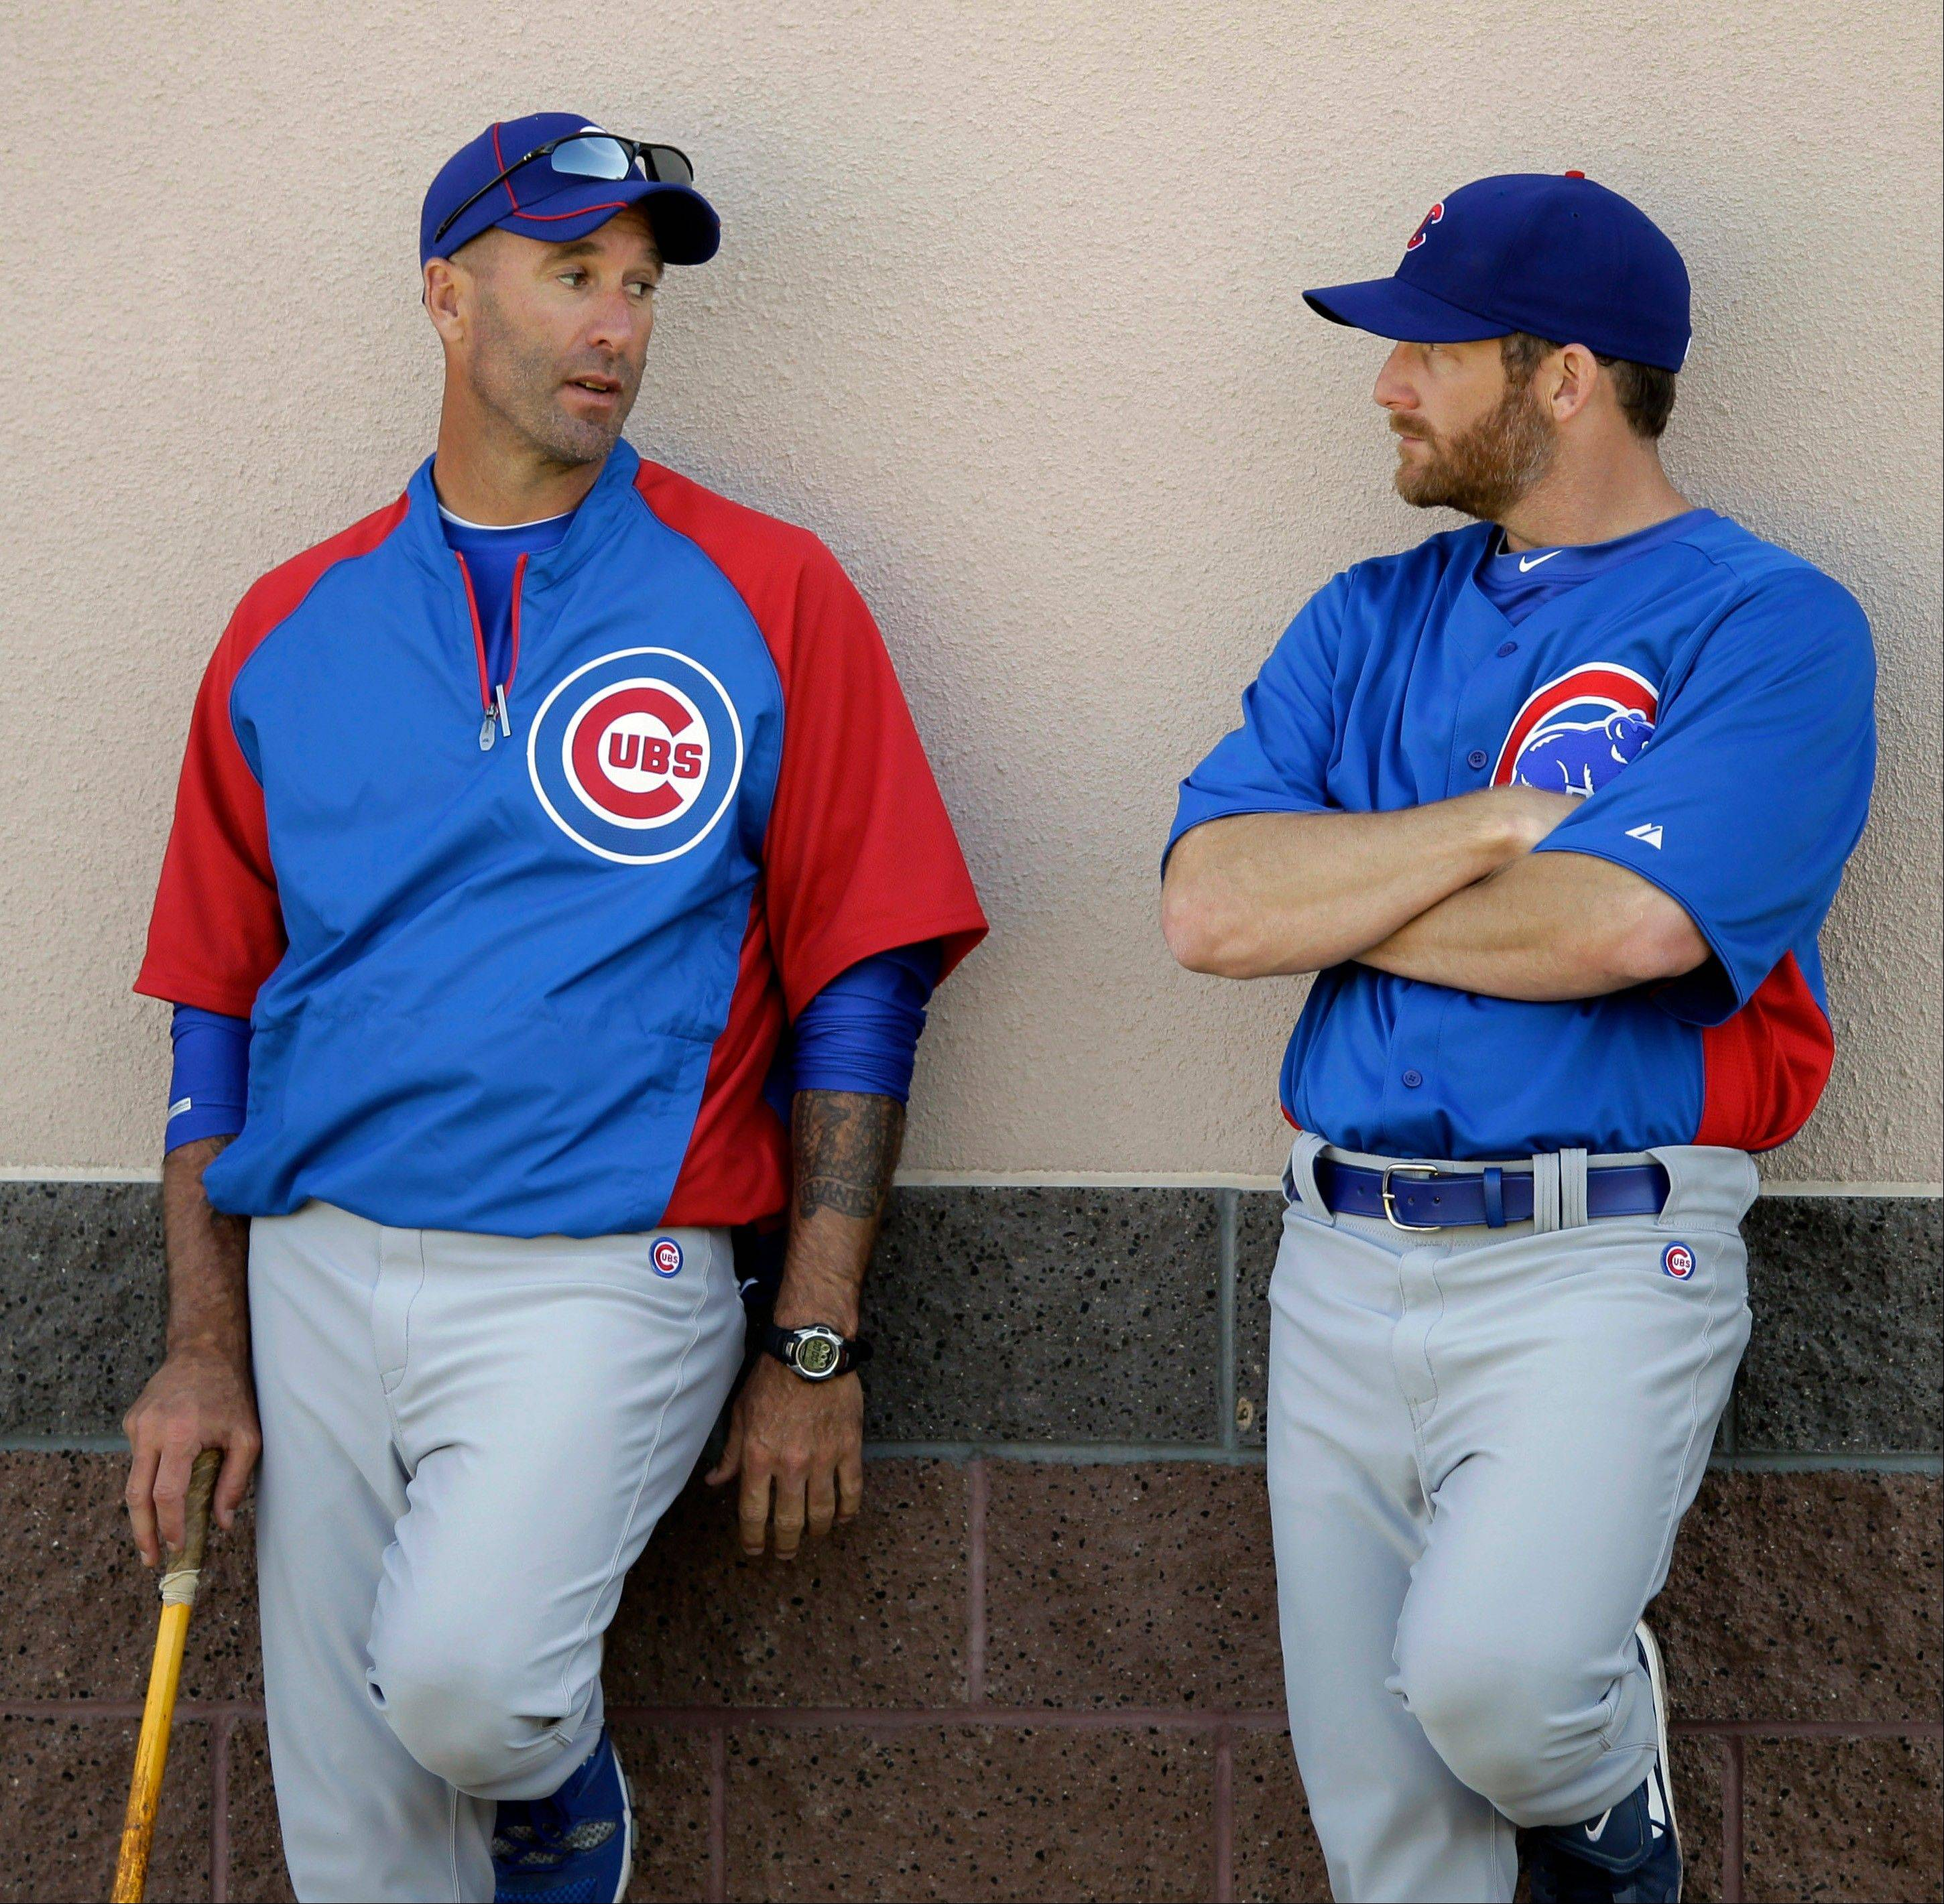 Chicago Cubs manager Dale Sveum, left, talks to pitcher Ryan Dempster during a spring training baseball workout, Tuesday, Feb. 21, 2012, in Mesa, Ariz.